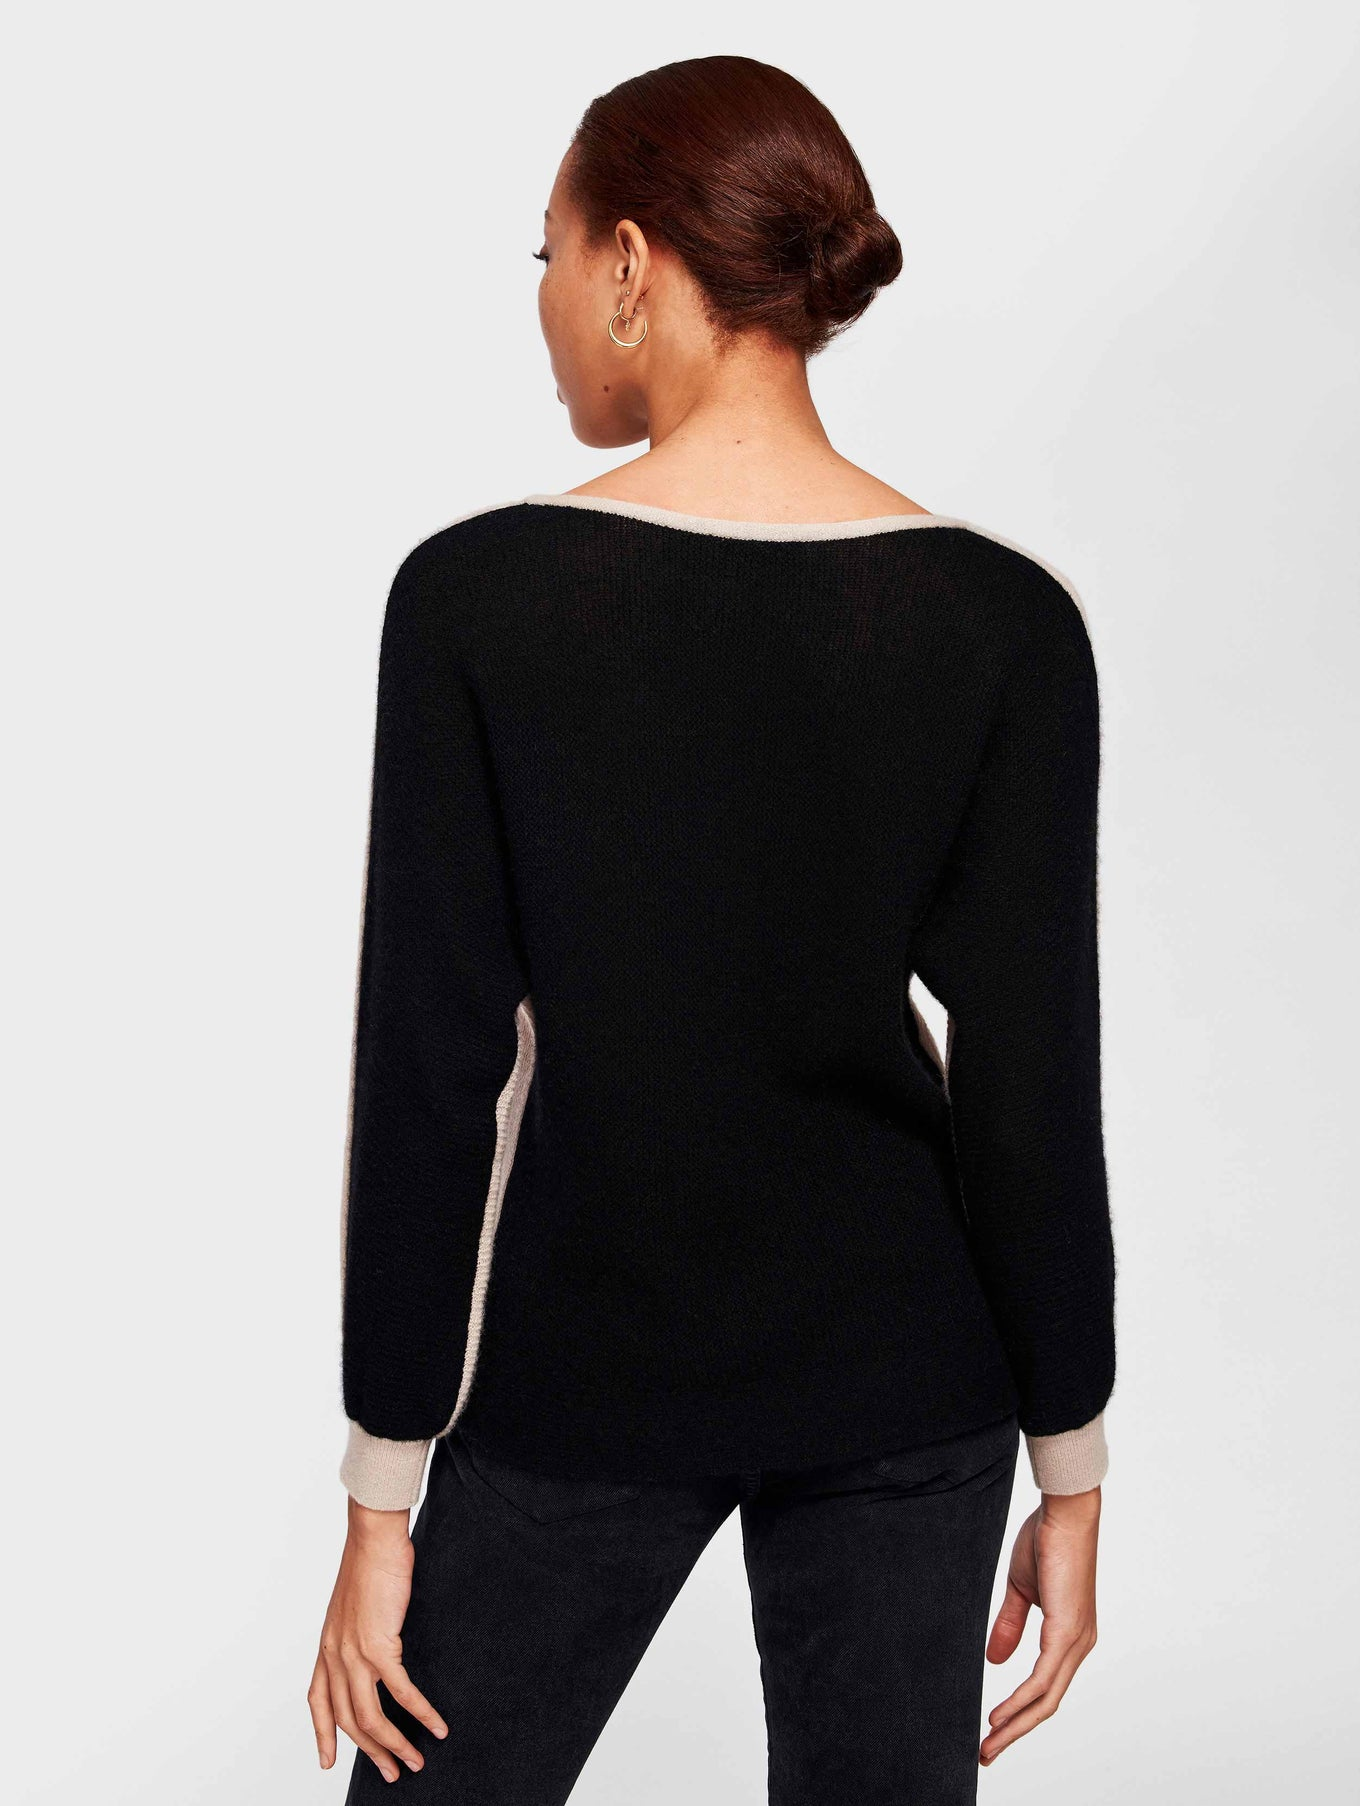 Cashmere Color Blocked Dolman Crewneck - Sandstone/Black - Image 3